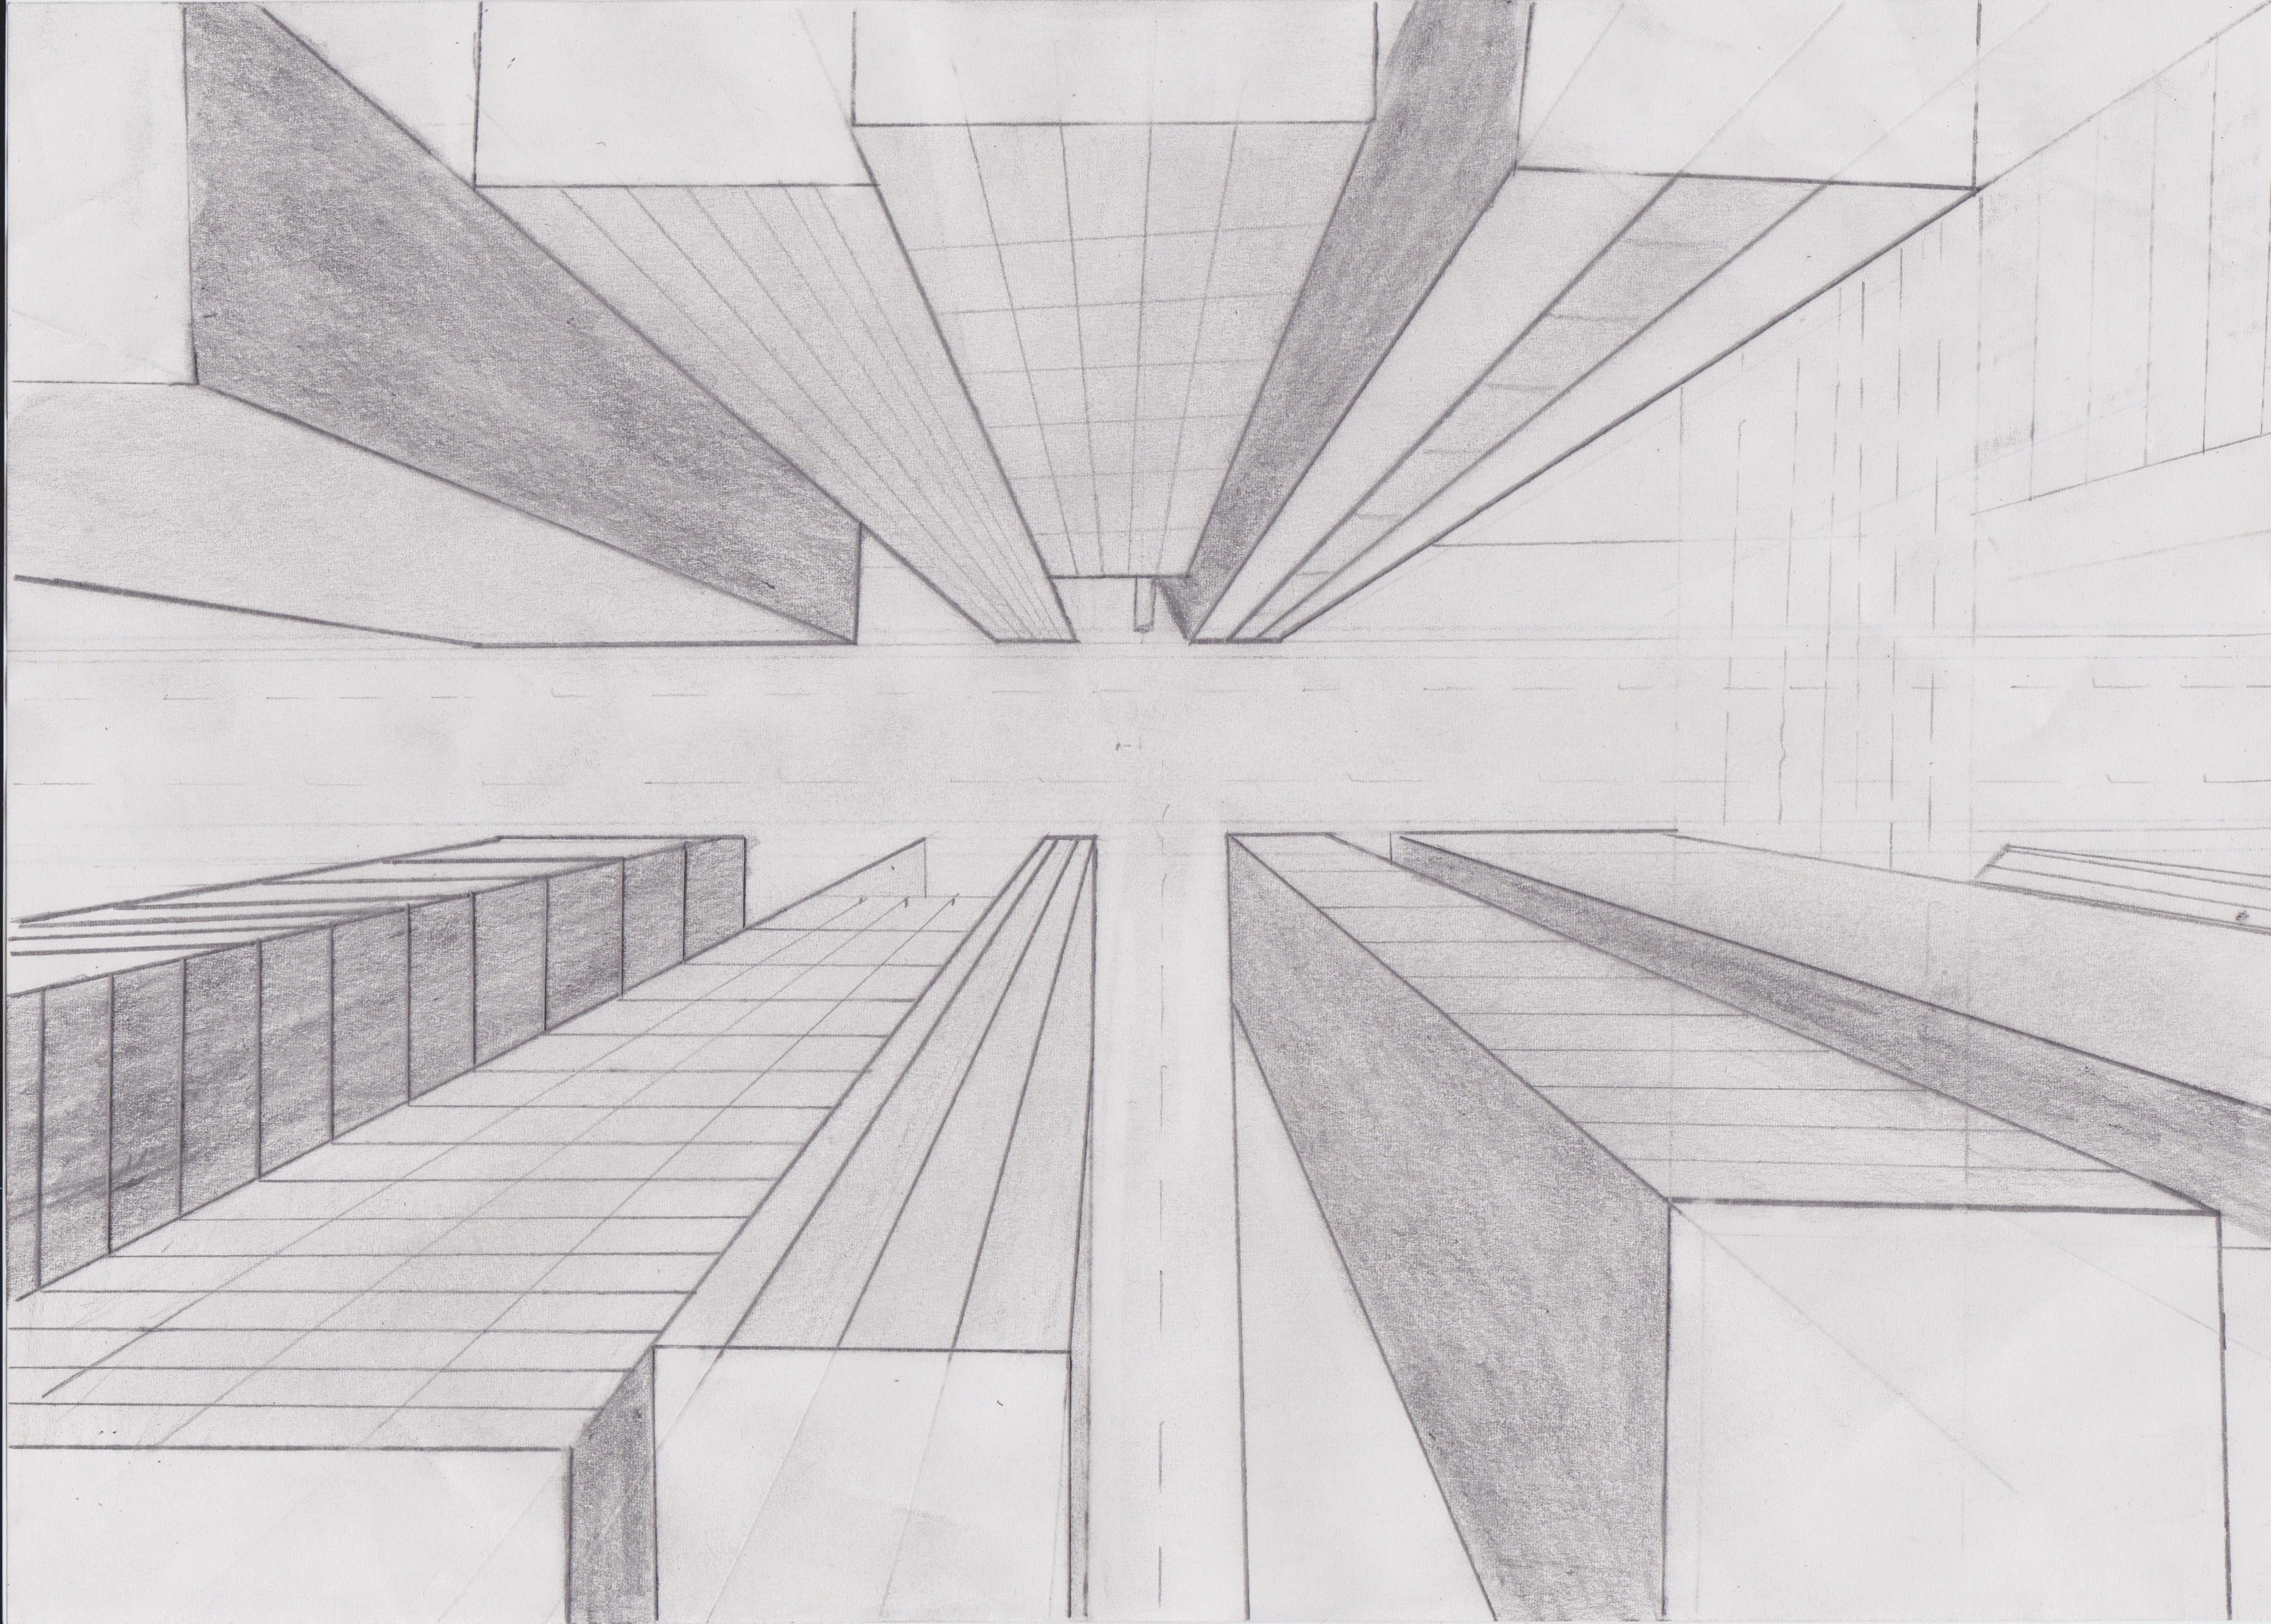 Creative Media Perspective Drawing   s12004223